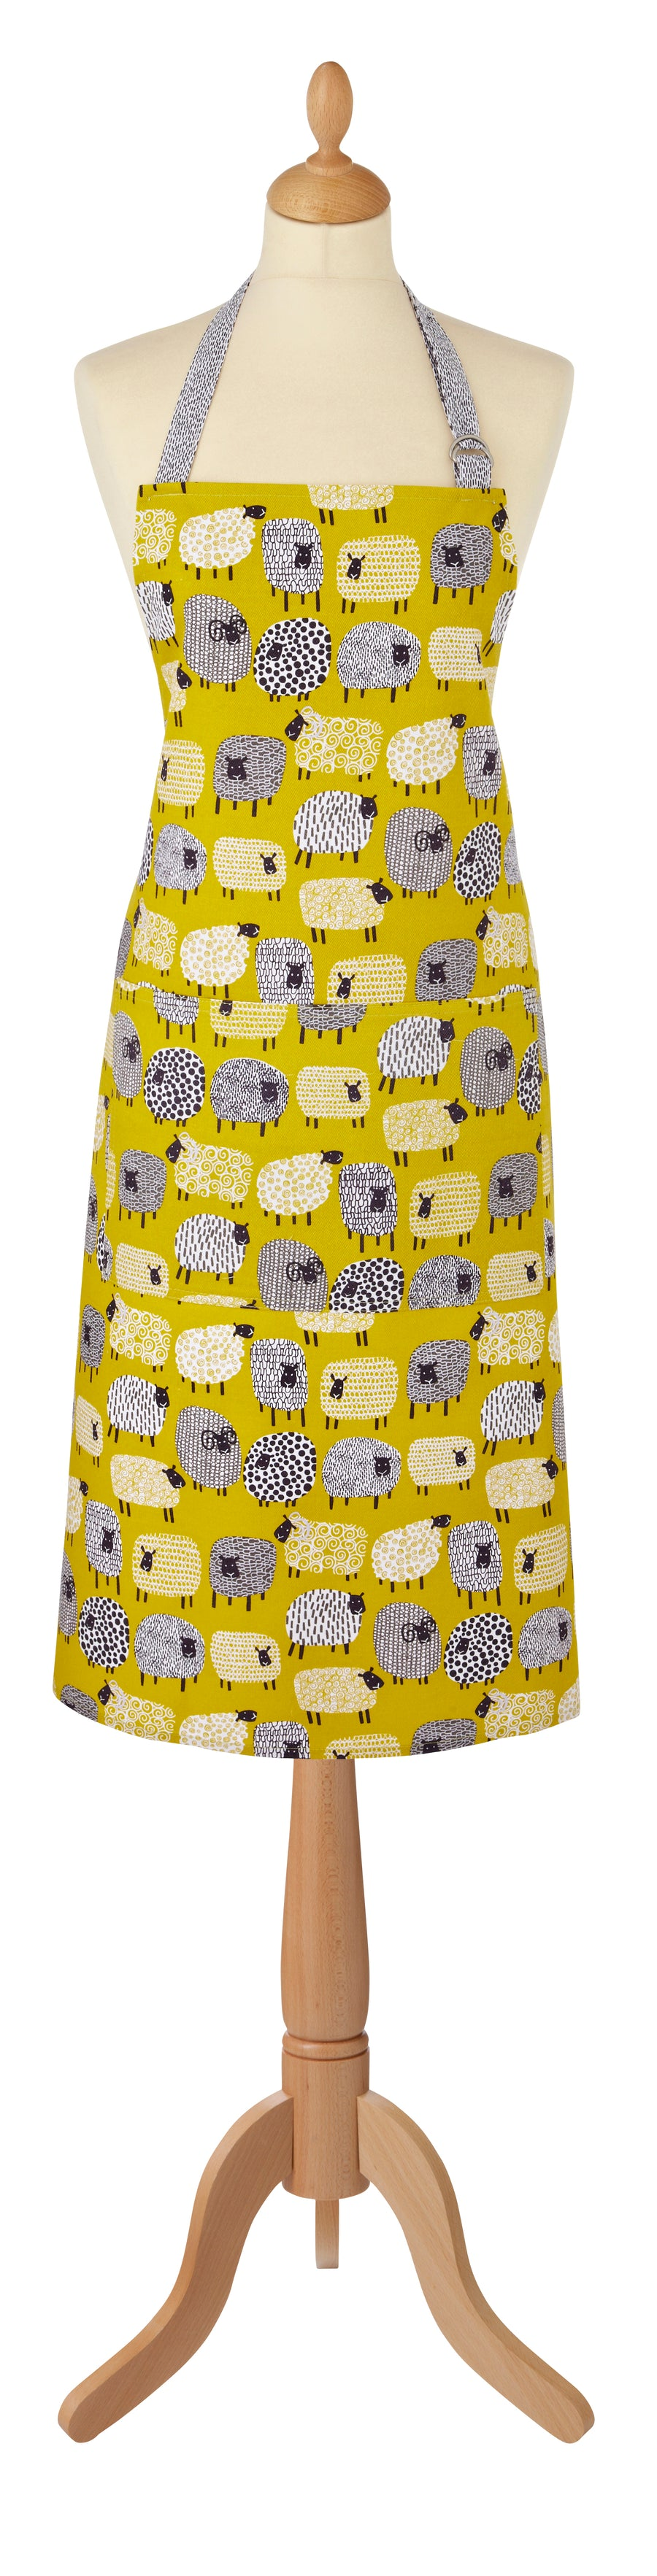 DOTTY SHEEP COTTON APRON - 7DTS01